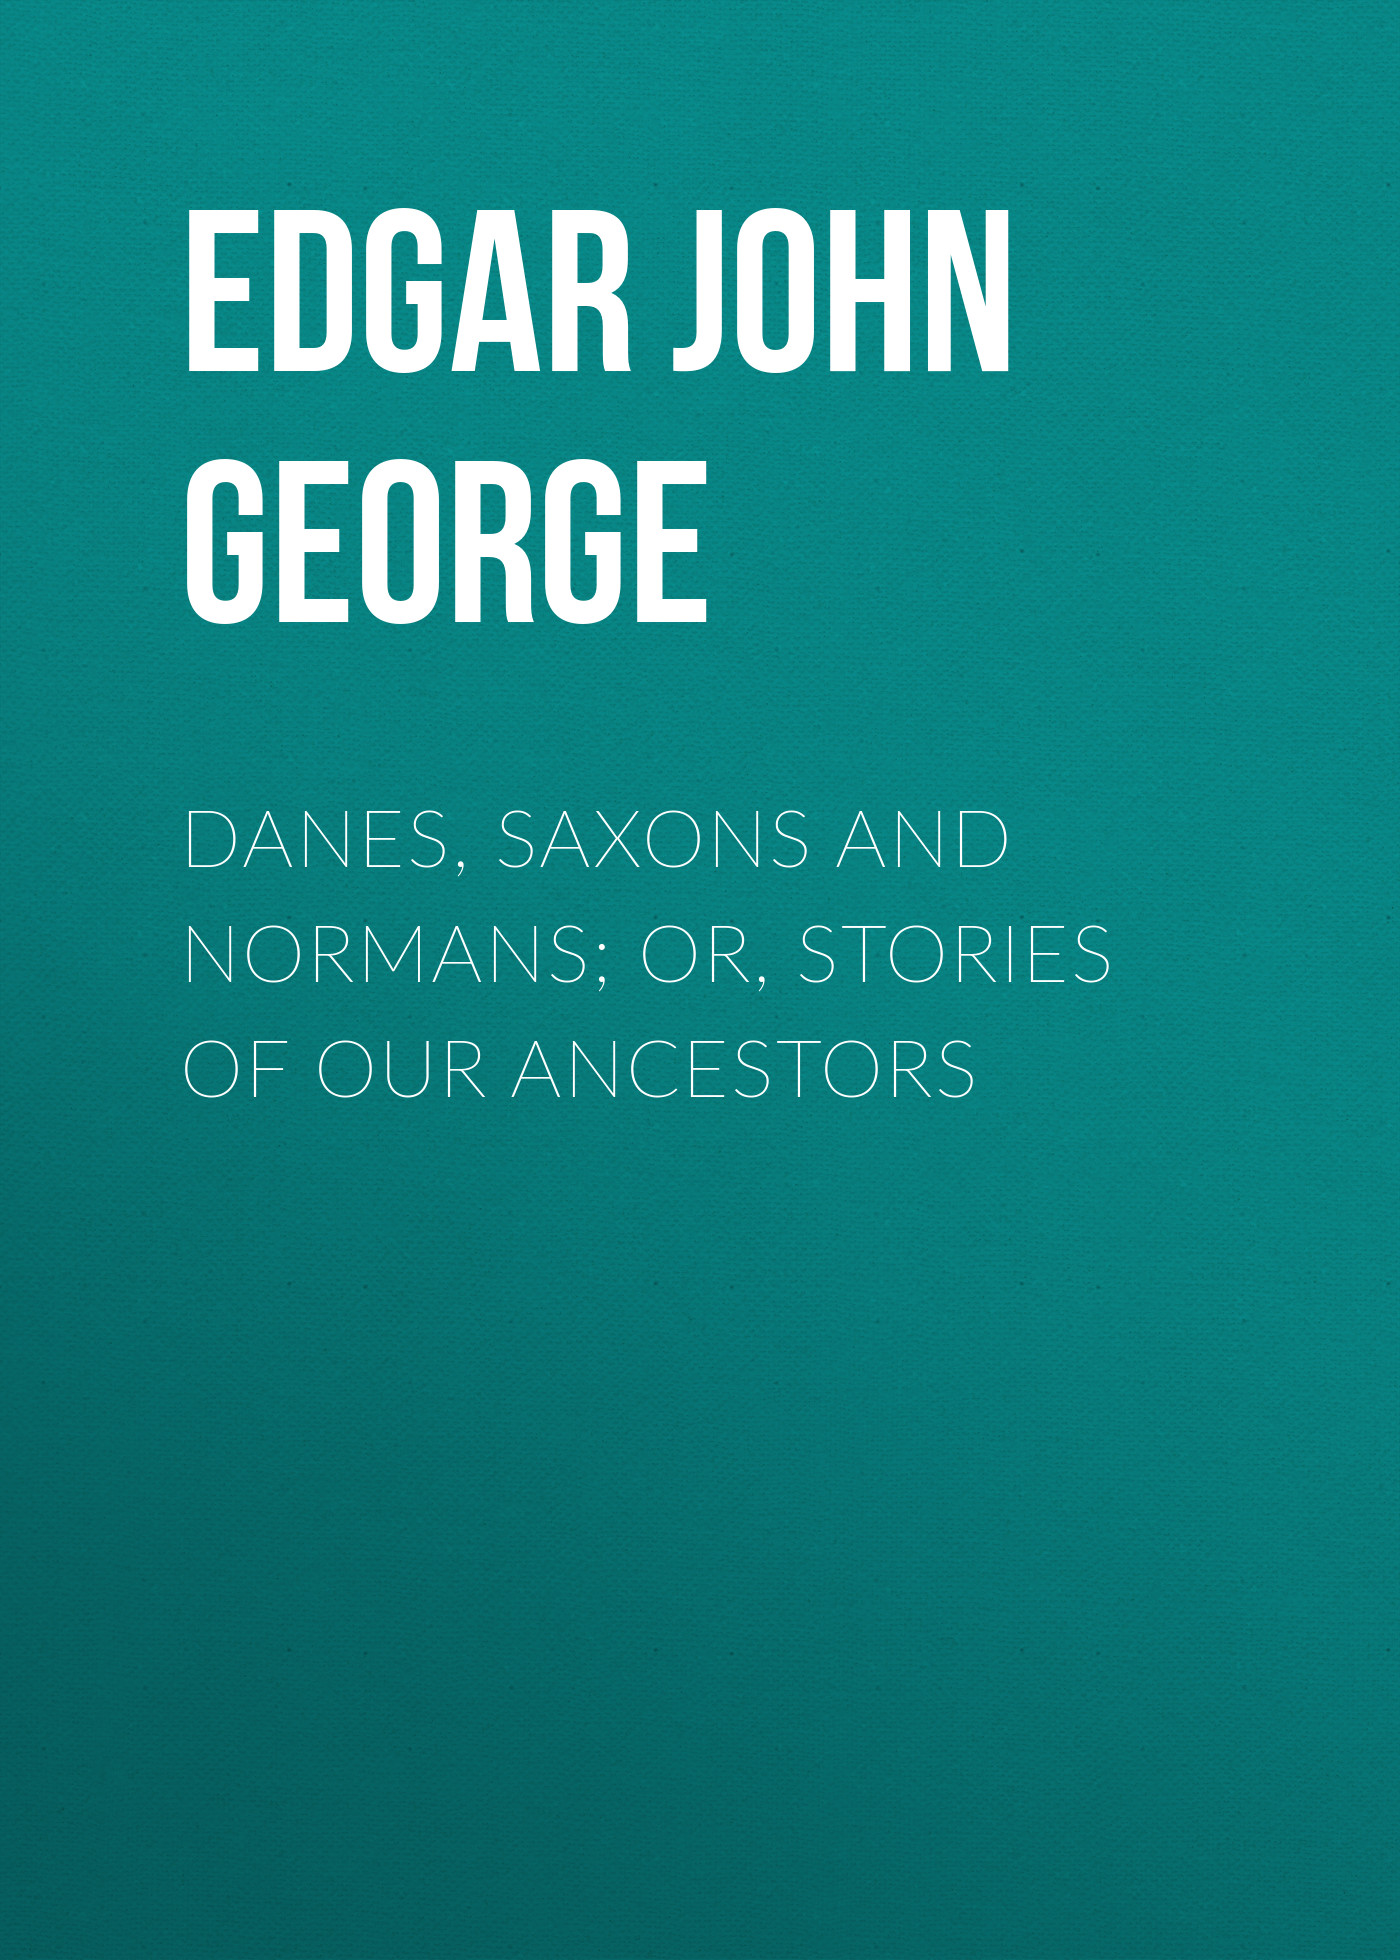 Edgar John George Danes, Saxons and Normans; or, Stories of our ancestors стоимость